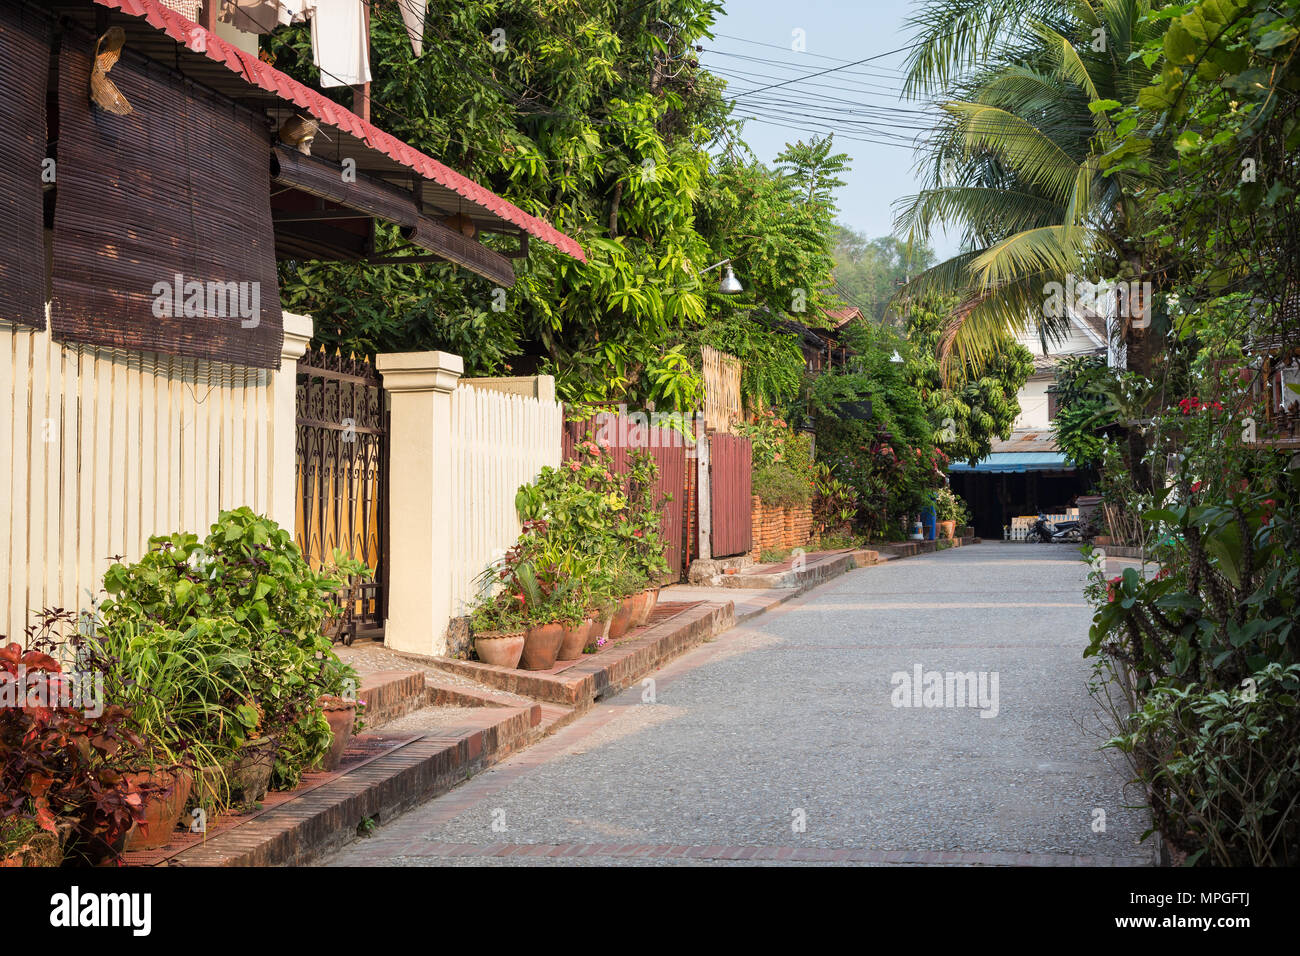 Idyllic side street in Luang Prabang, Laos, on a sunny day. Stock Photo